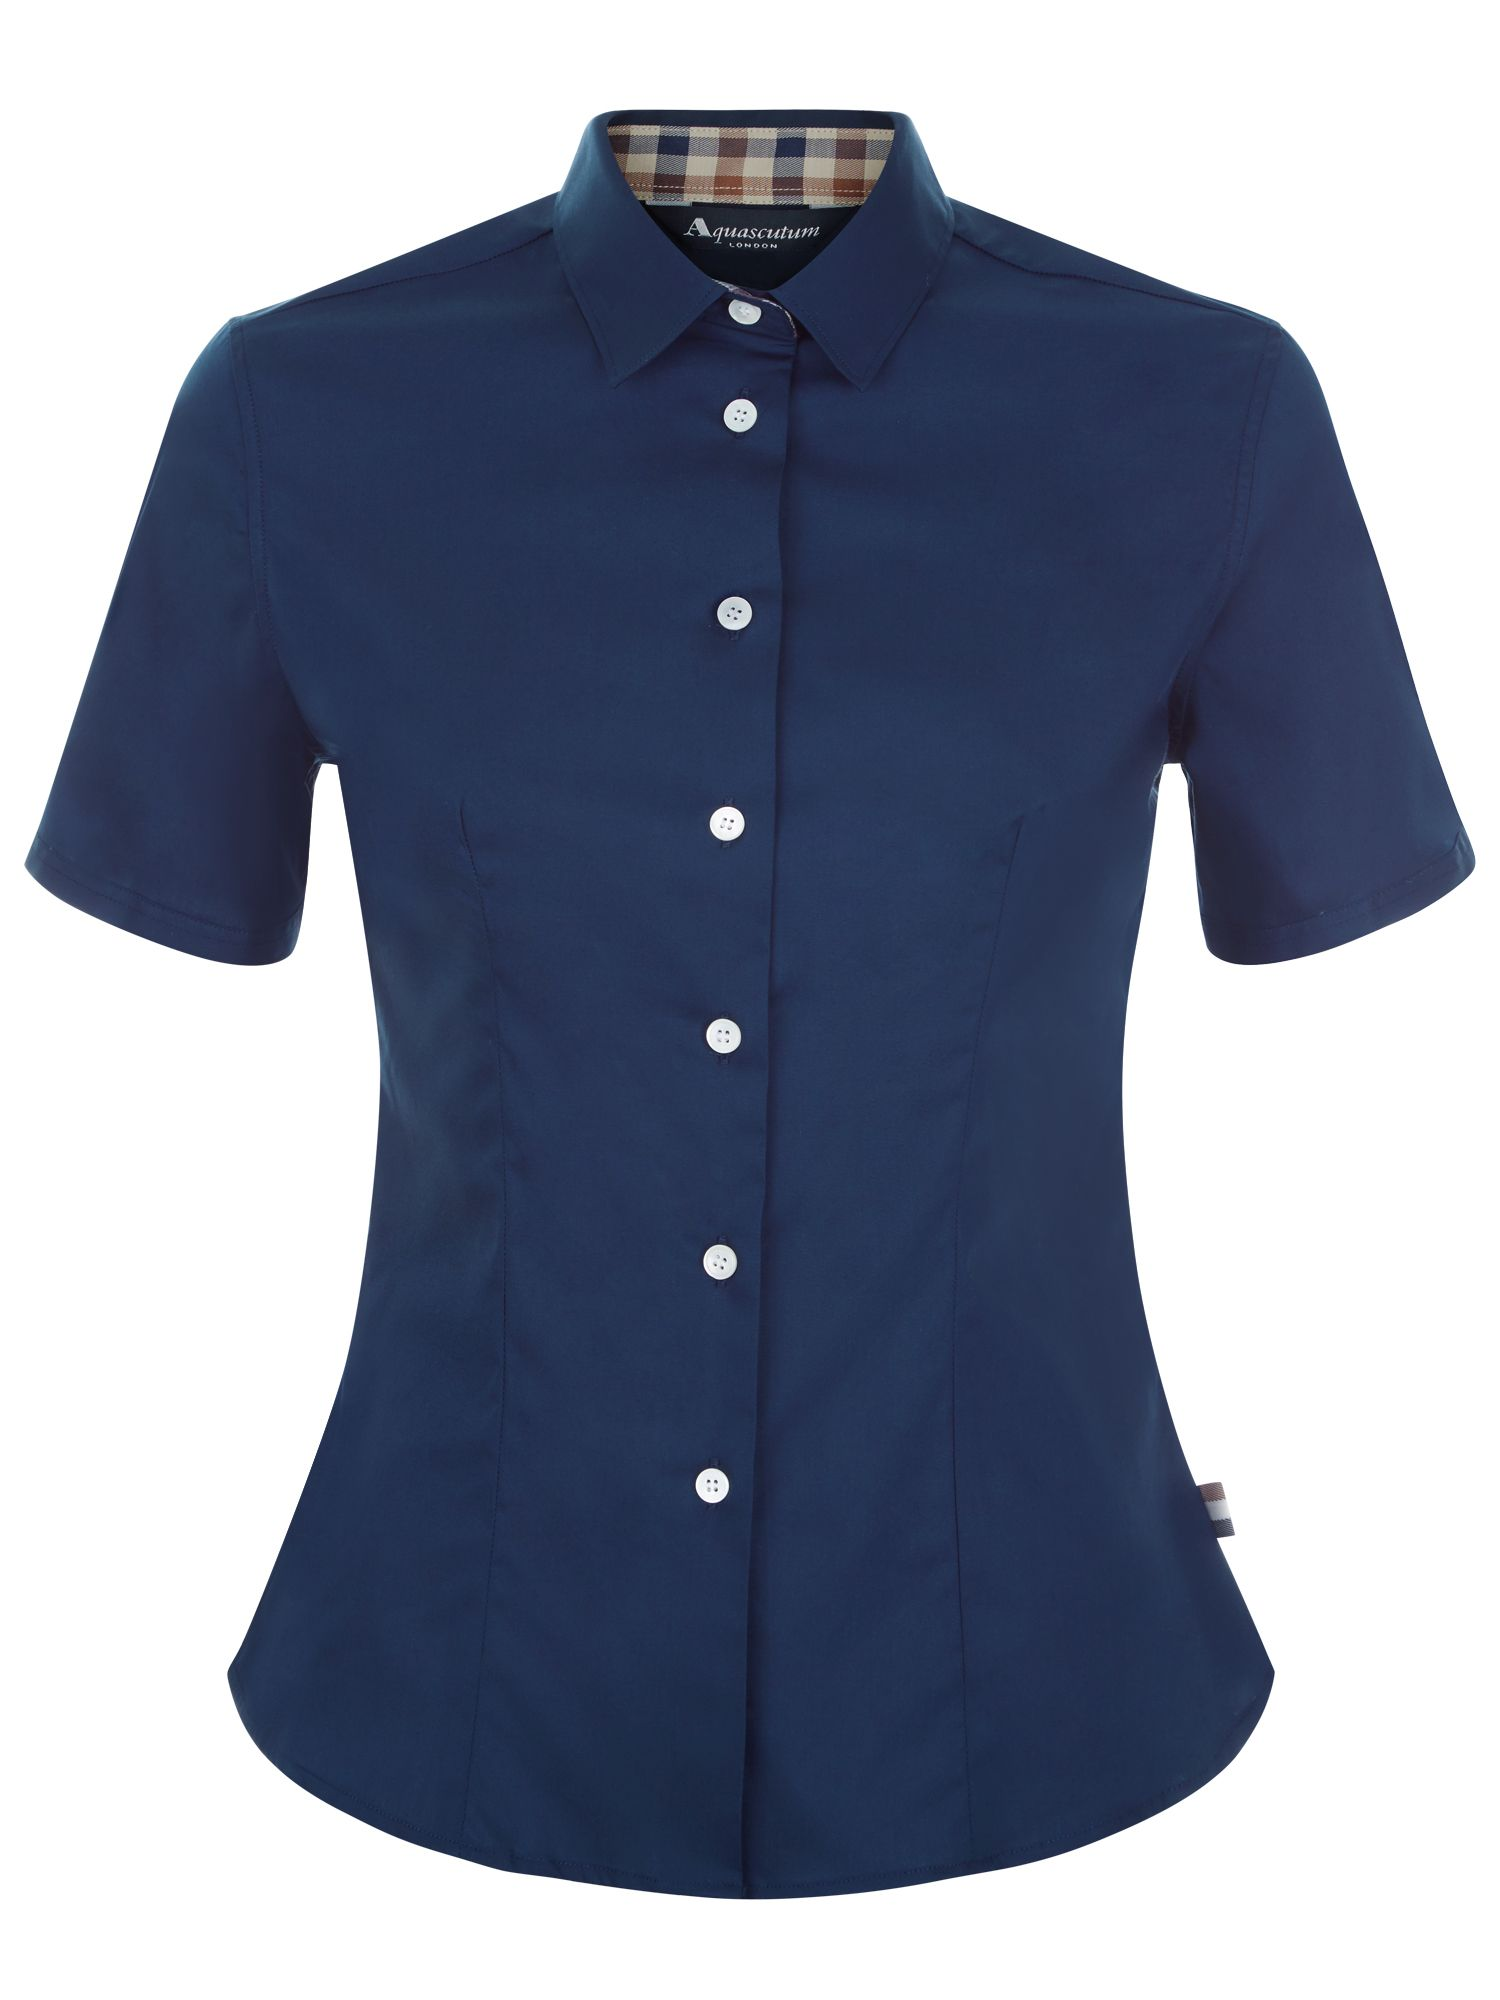 Aquascutum Jade Short Sleeve Shirt, Blue